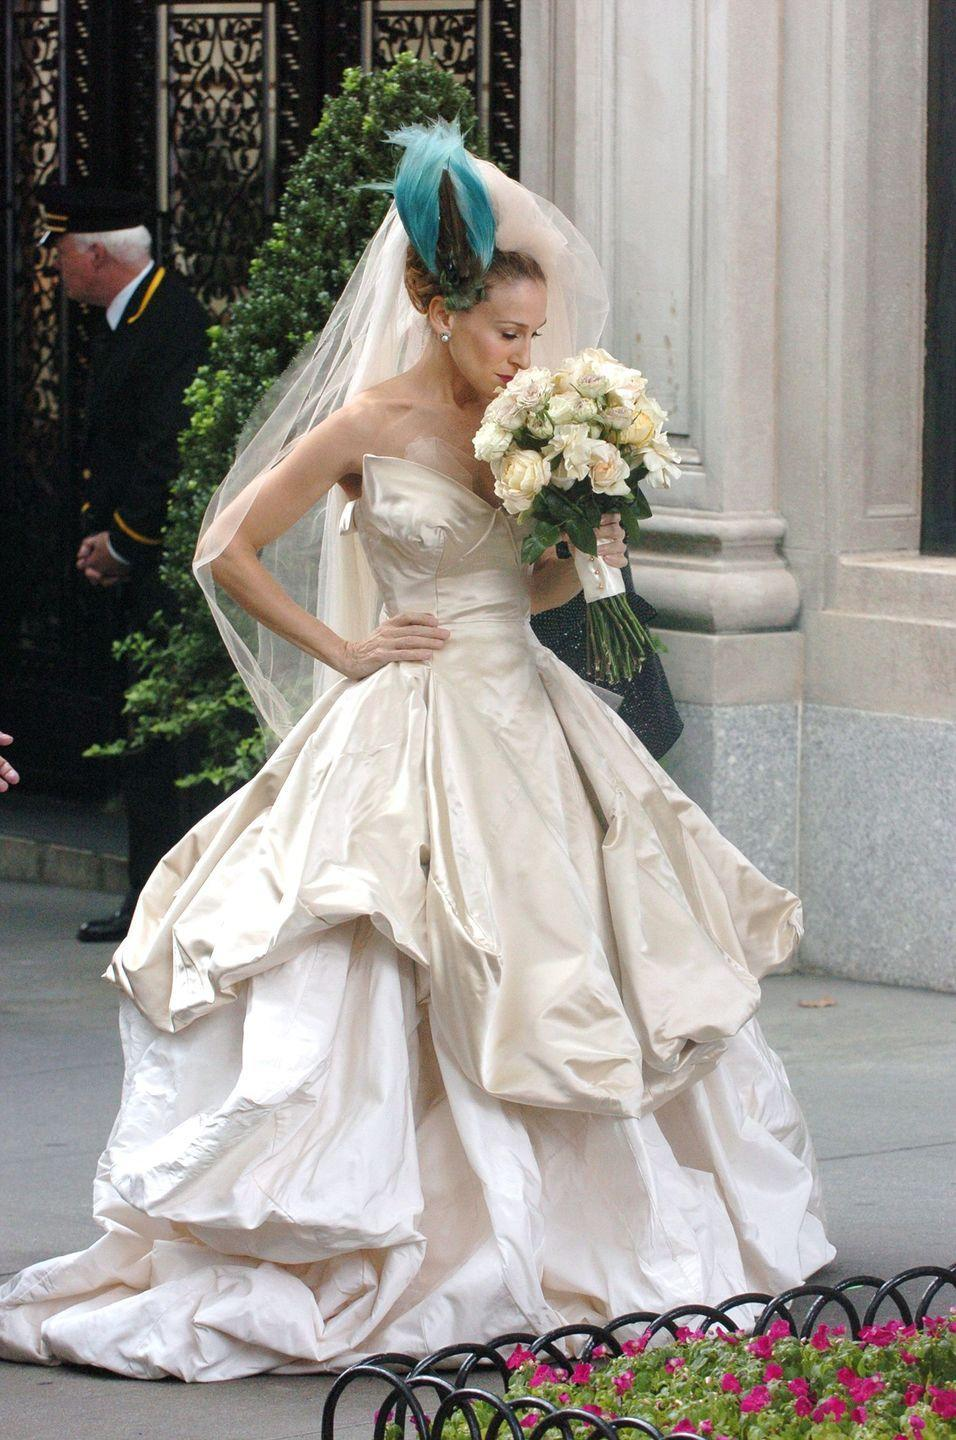 <p>Has anyone recovered from the Vivienne Westwood wedding dress Carrie Bradshaw wore in the 2008 <em>Sex and the City</em> movie? Obviously, the dress caused, er, complications for her and Big, but TBH, I'd choose this dress over Big any day.</p>